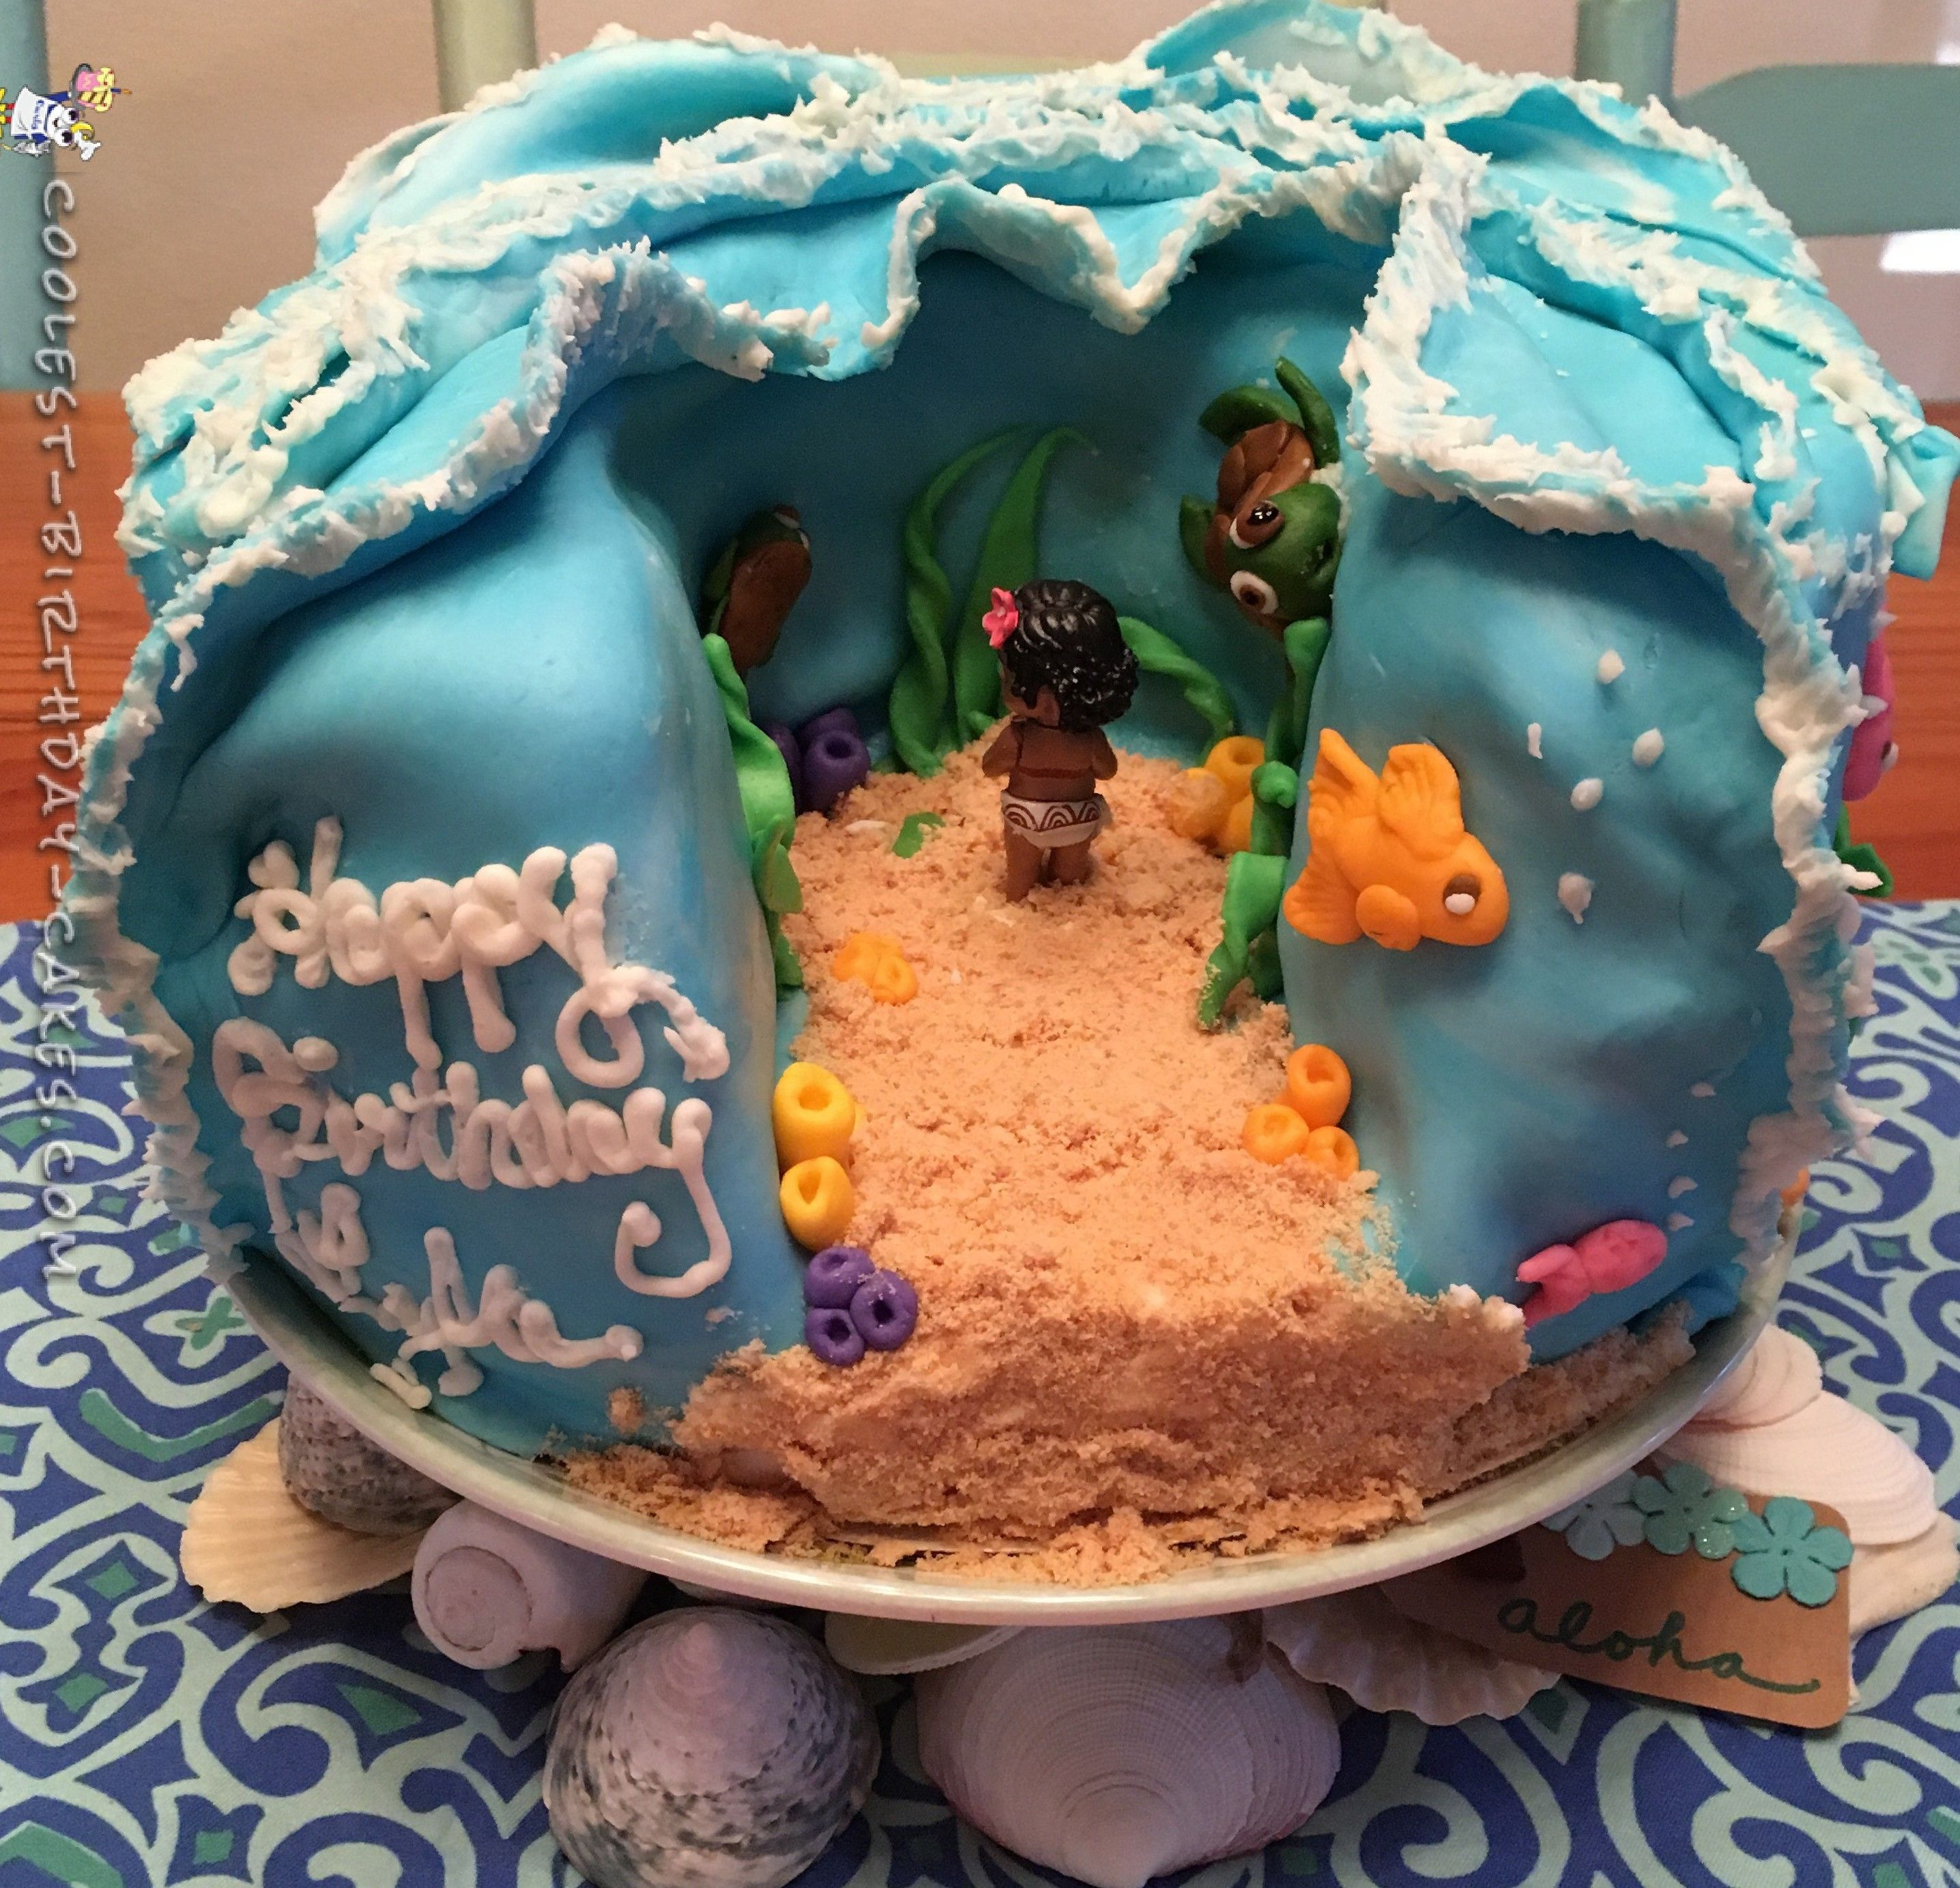 Disney Cake Decorating Ideas : Cool Homemade Moana Cake DIY Birthday, Homemade cakes ...